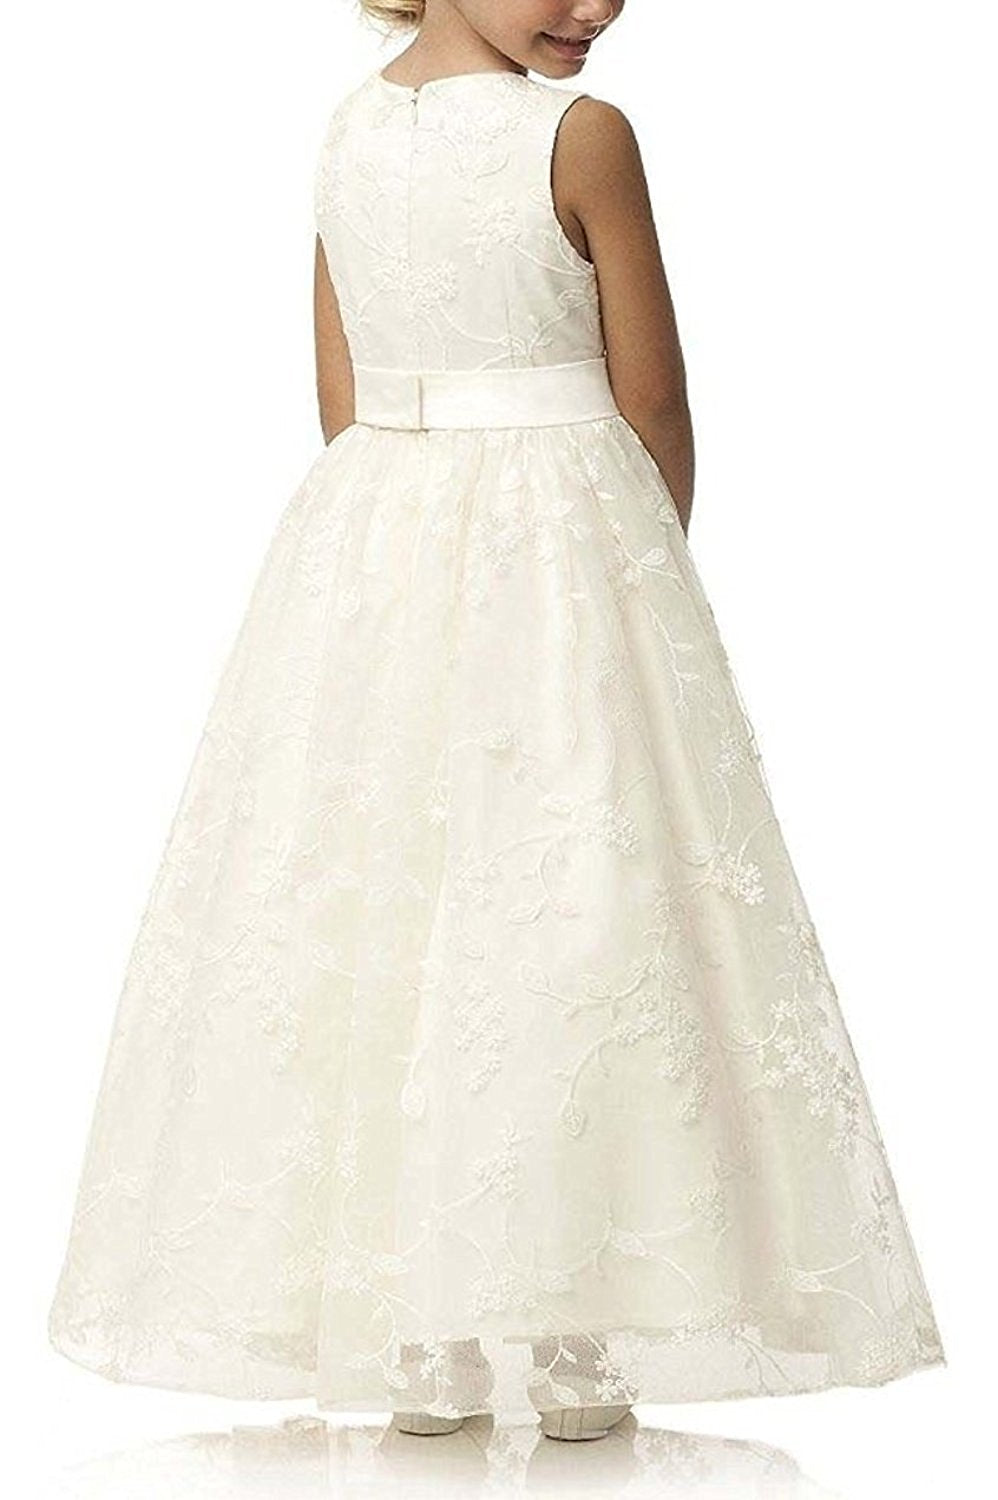 74a4adb952 ... AbaoWedding A line Wedding Pageant Lace Flower Girl Dress with Belt  2-12 Year Old